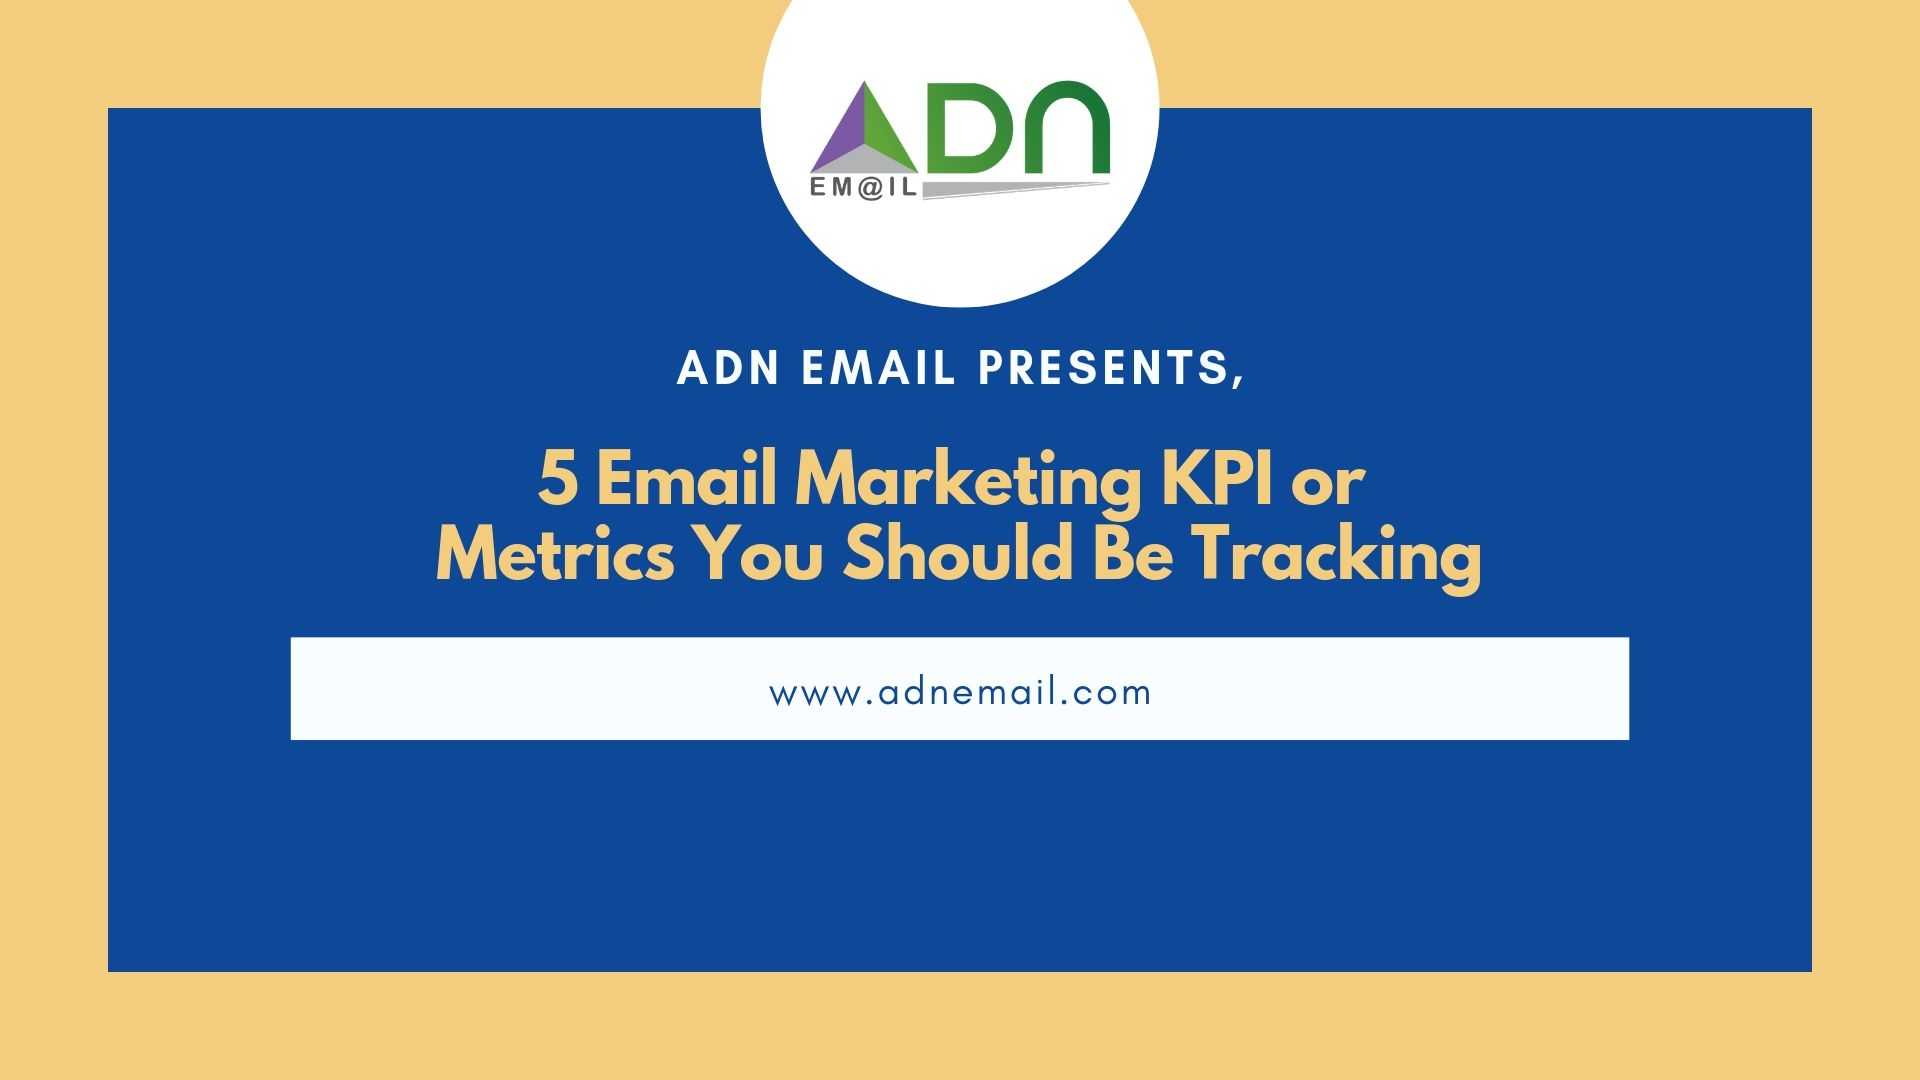 Email Marketing KPI